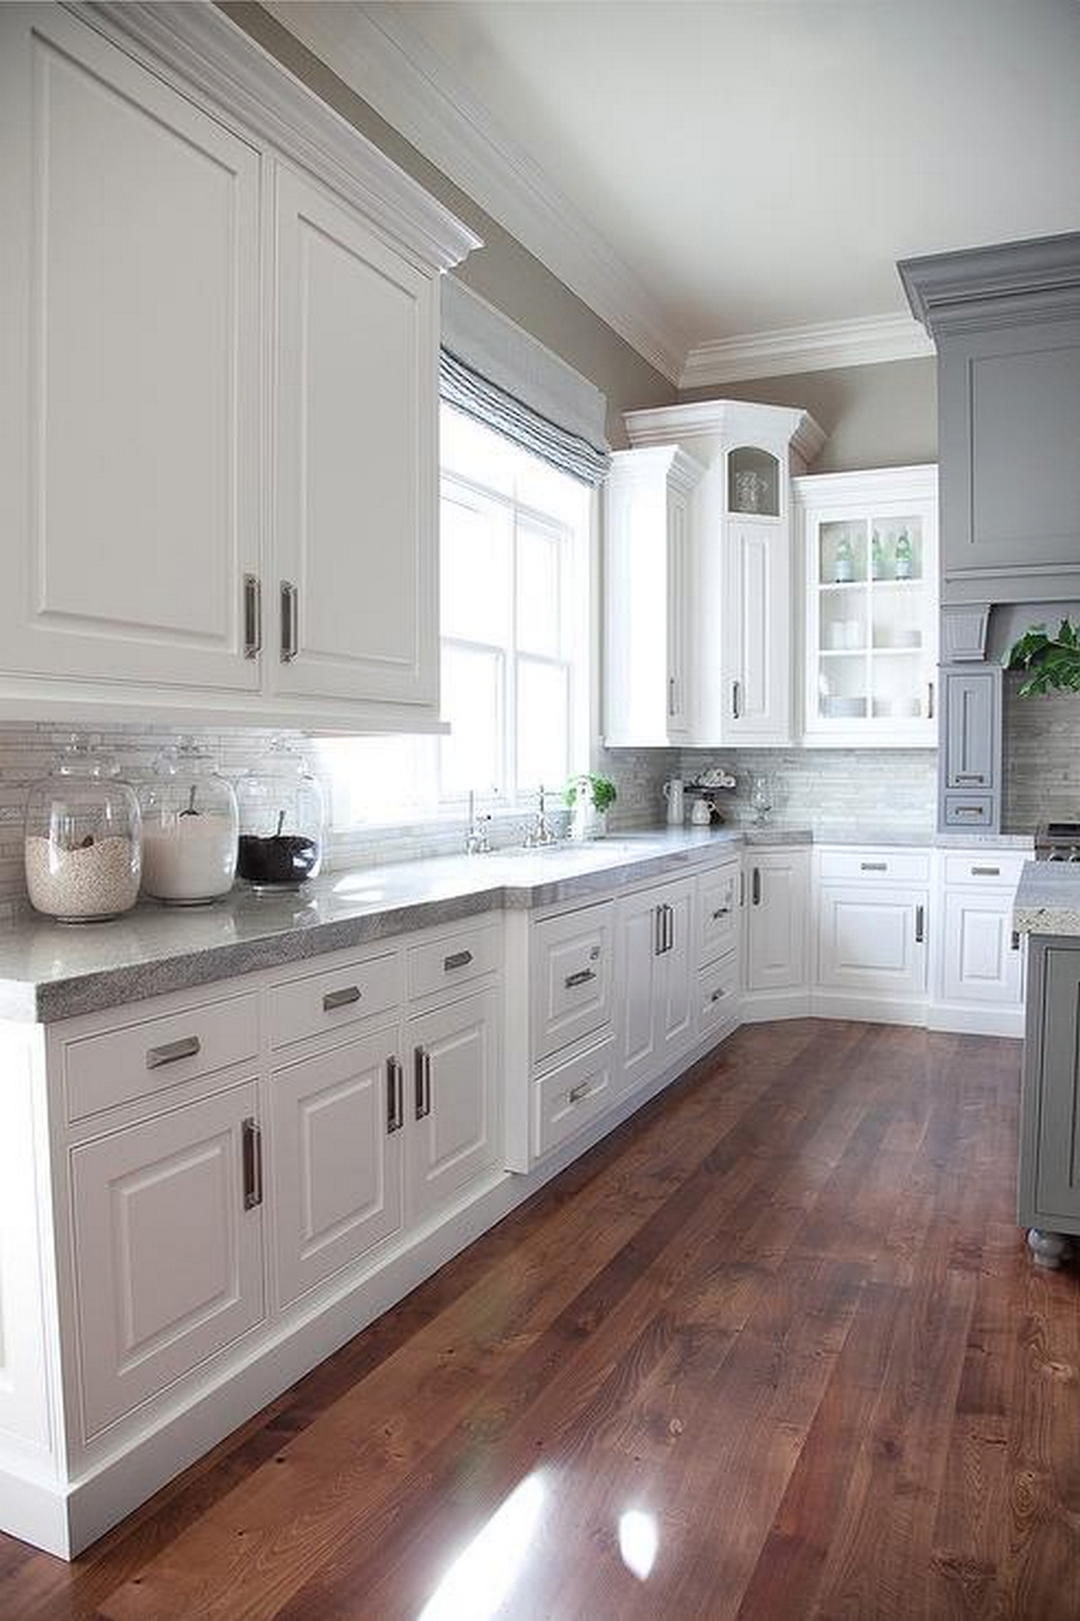 53 Pretty White Kitchen Design Ideas | Kitchen Design / Inspiration ...